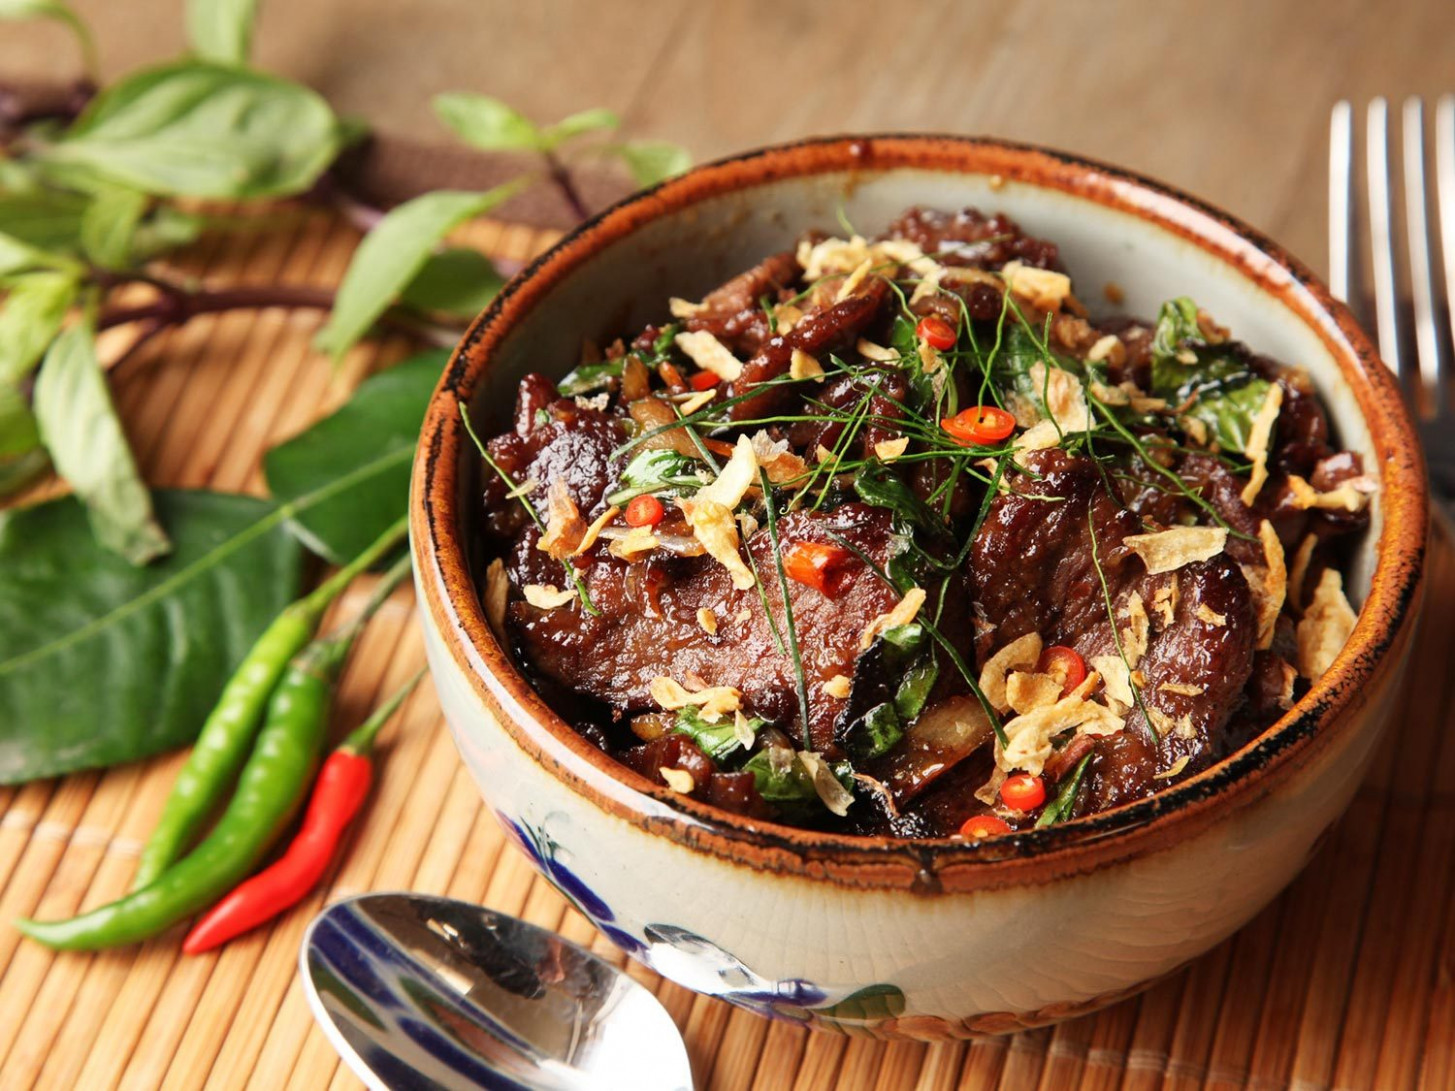 Thai Style Beef With Basil And Chilies (Phat Bai Horapha) Recipe - Food Recipes Beef